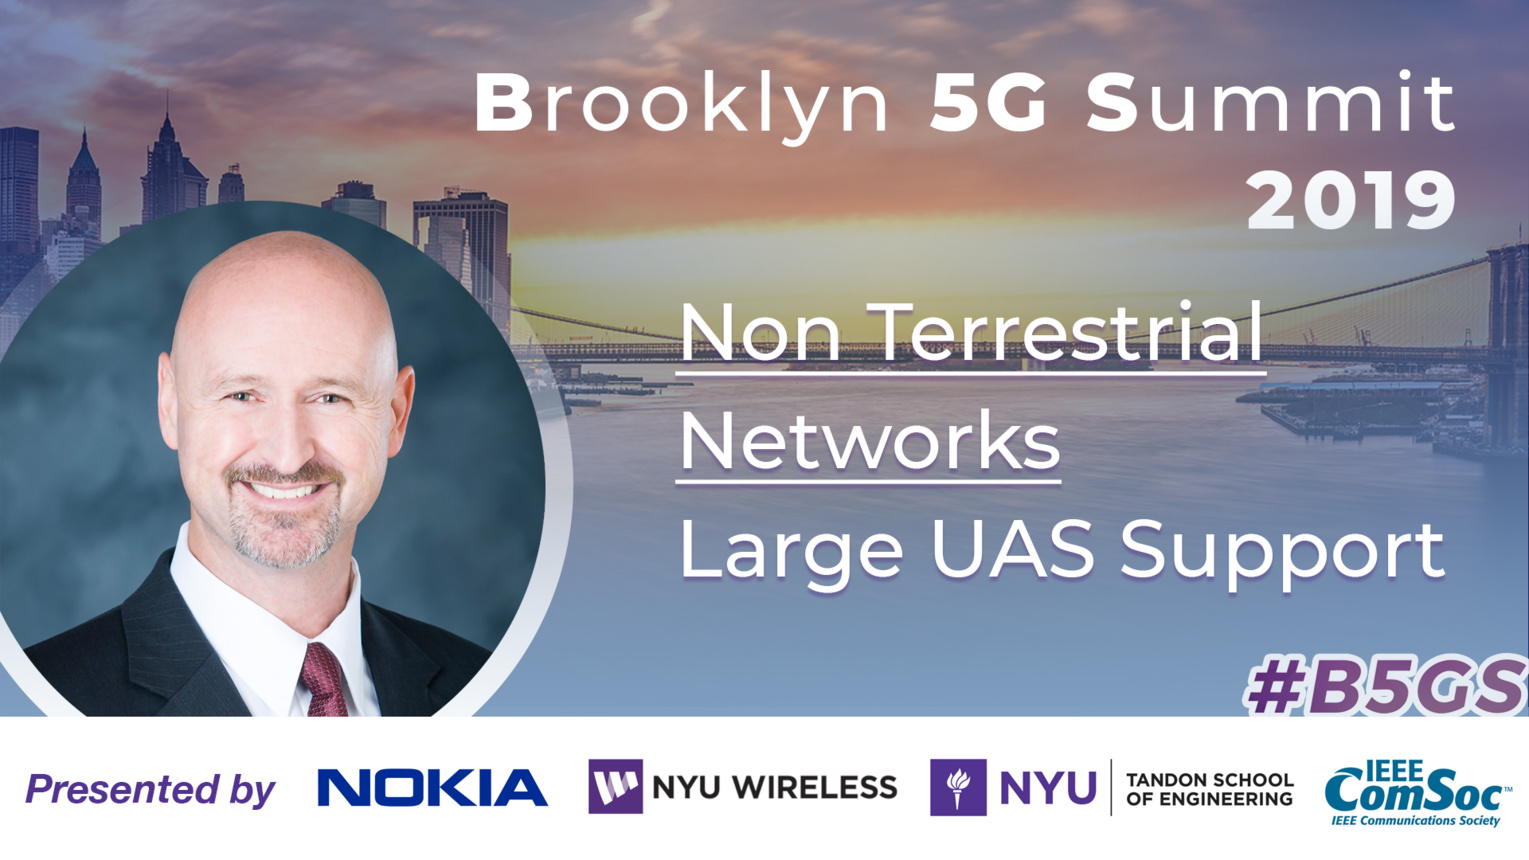 Large UAS Support: Non Terrestrial Networks - Dallas Brooks - B5GS 2019